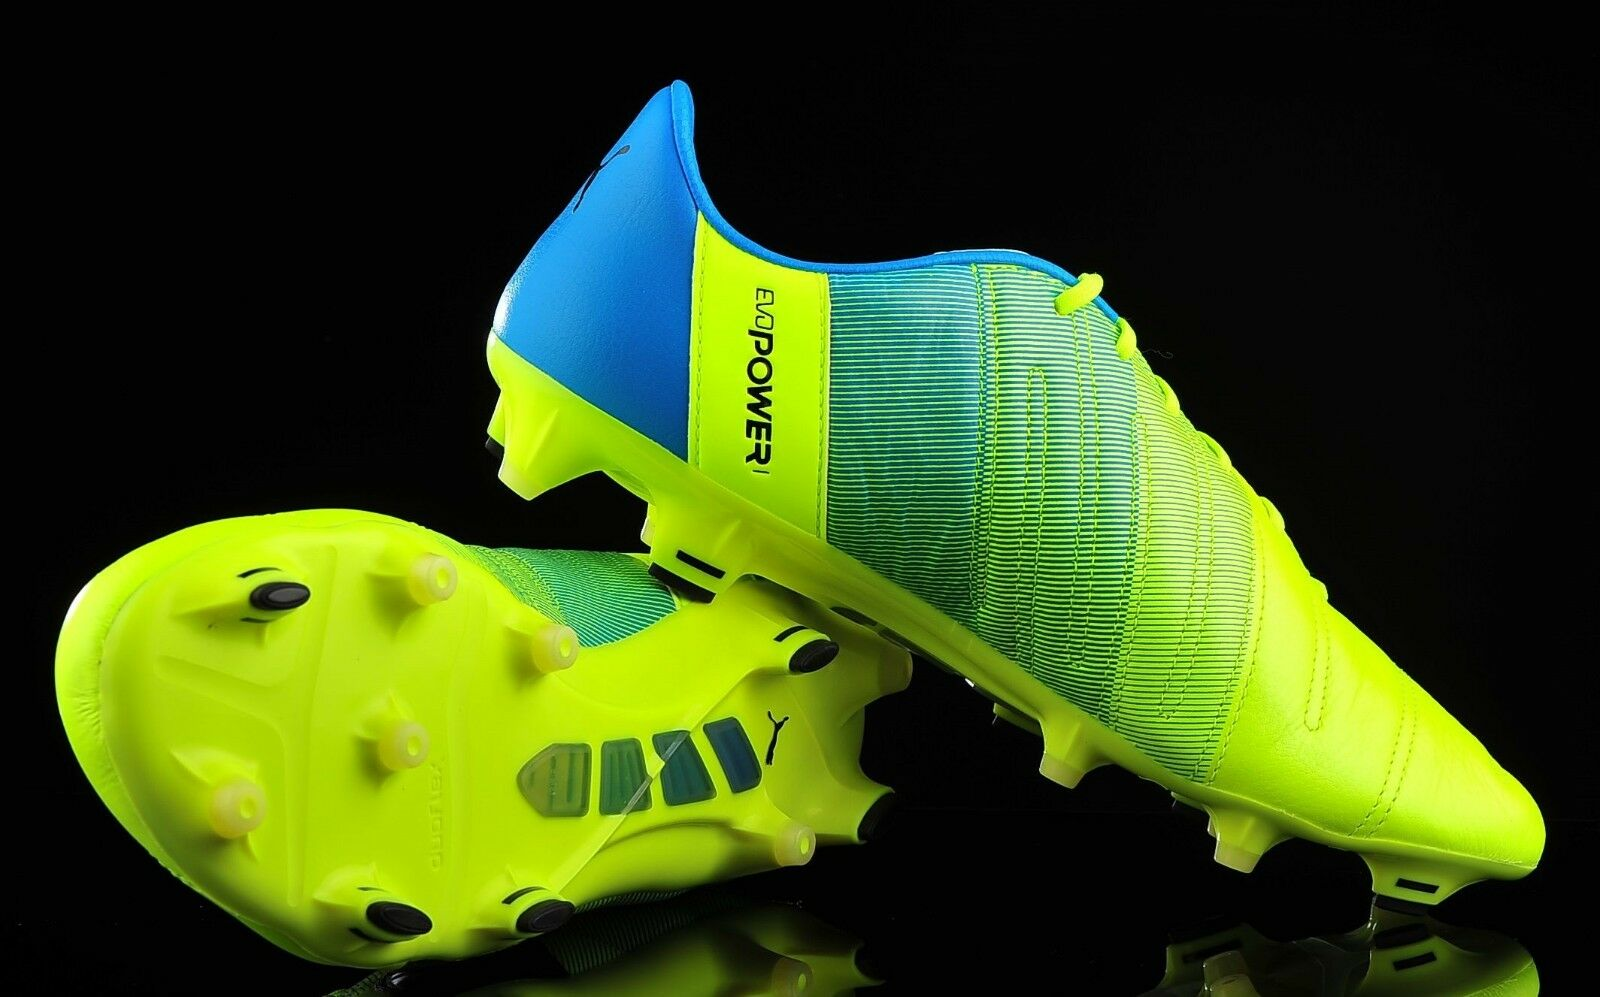 Puma de cuero evopower 1.3 FG soccer cleats reduction 103527 01 MSRP price reduction cleats 2f755b